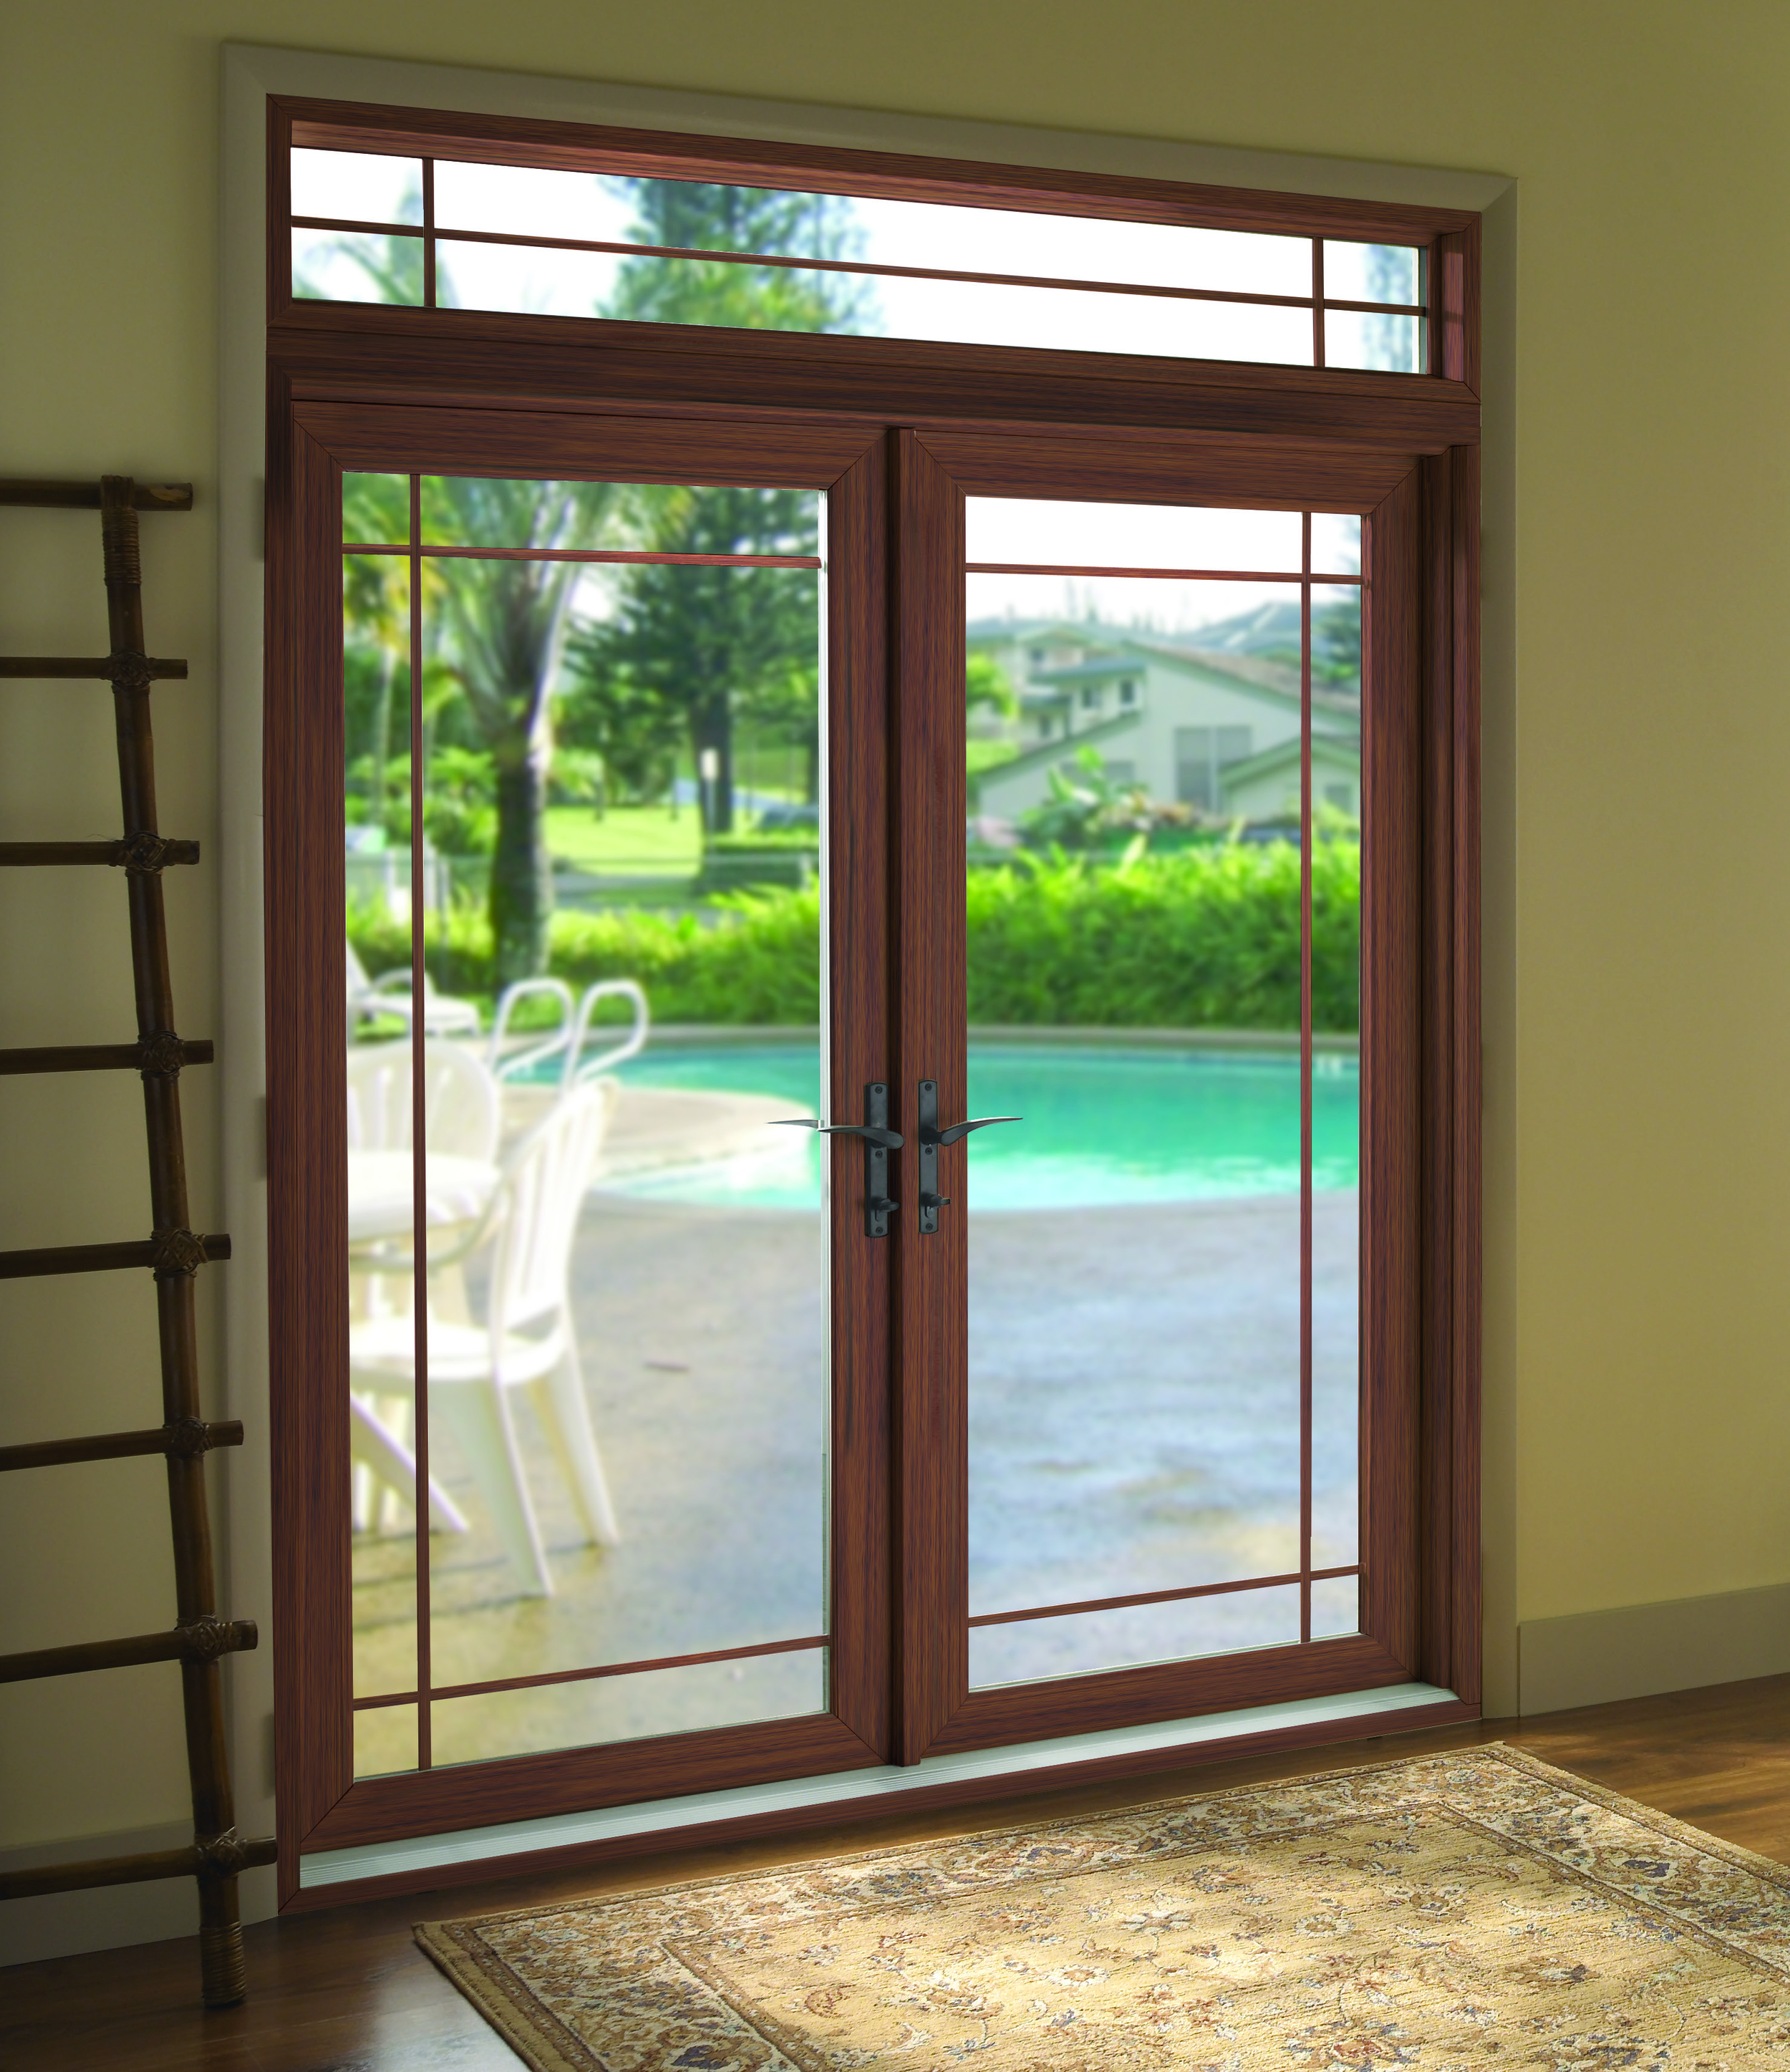 960 Outswing Hinged Patio Door Beauty Shot.jpg